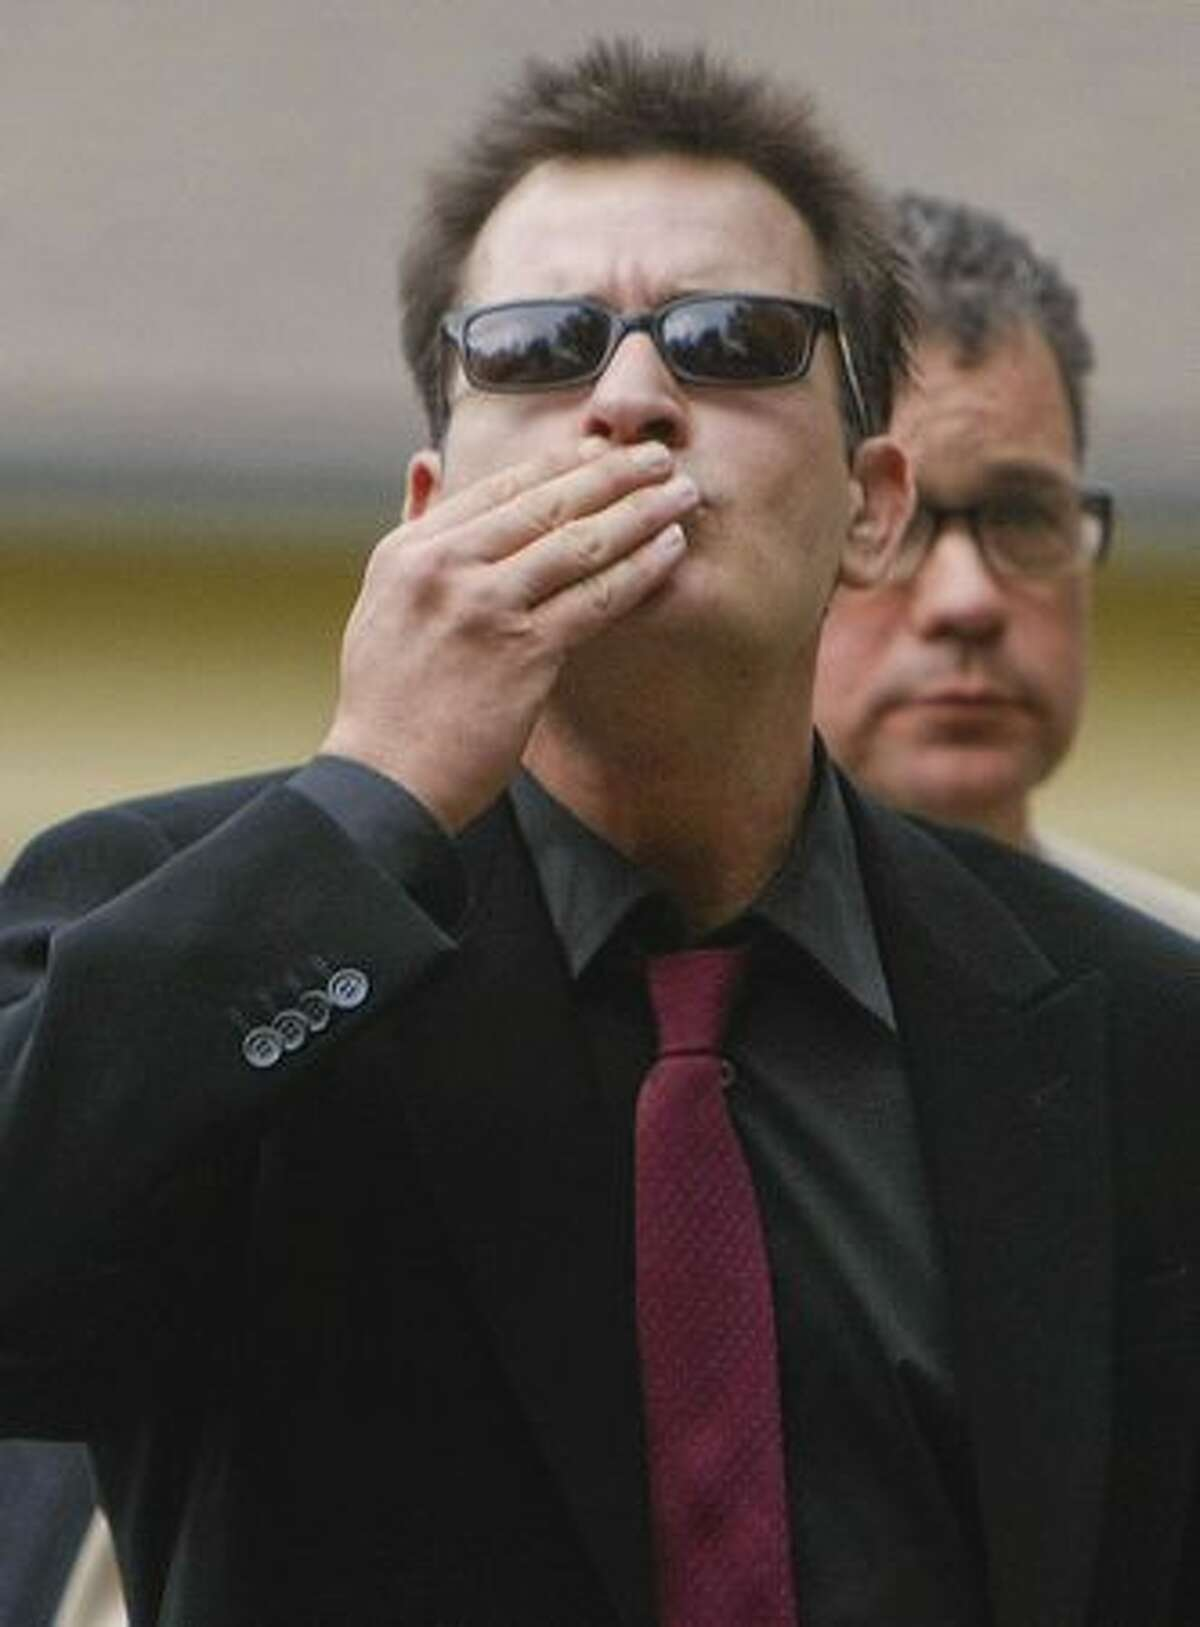 """""""Winner!"""" Charlie Sheen recently lost his job as star on Two and a Half Men due to his recent antics. Those """"antics"""" include trashing a hotel room, various porn star friends, alleged suitcases of cocaine and public rants online and on radio."""